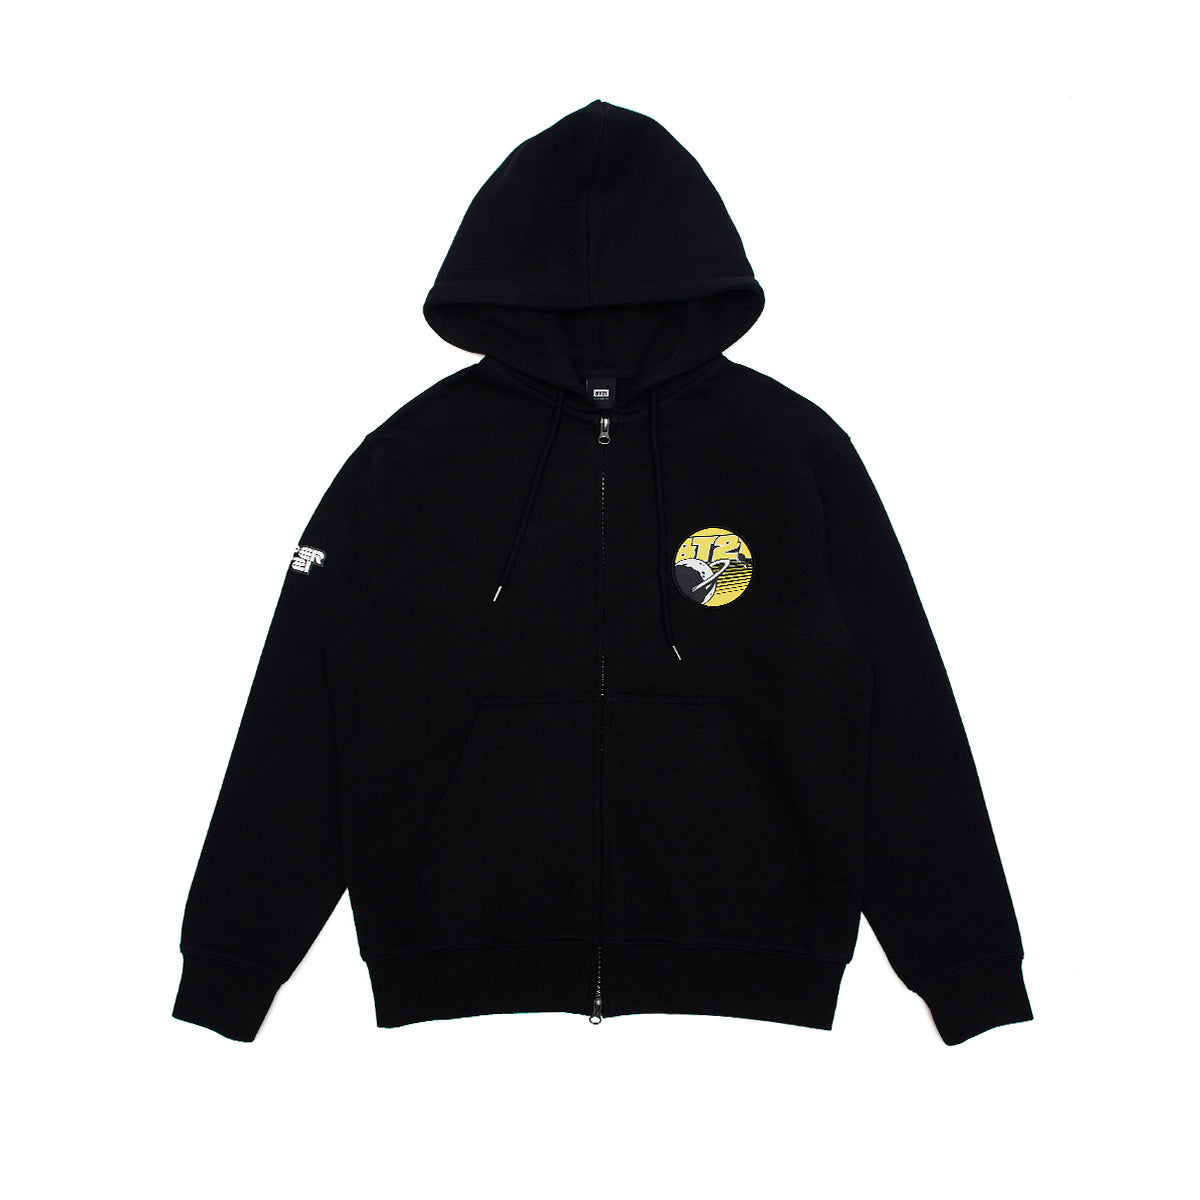 BT21 CHARACTERS Space Squad Zip Up Hooded